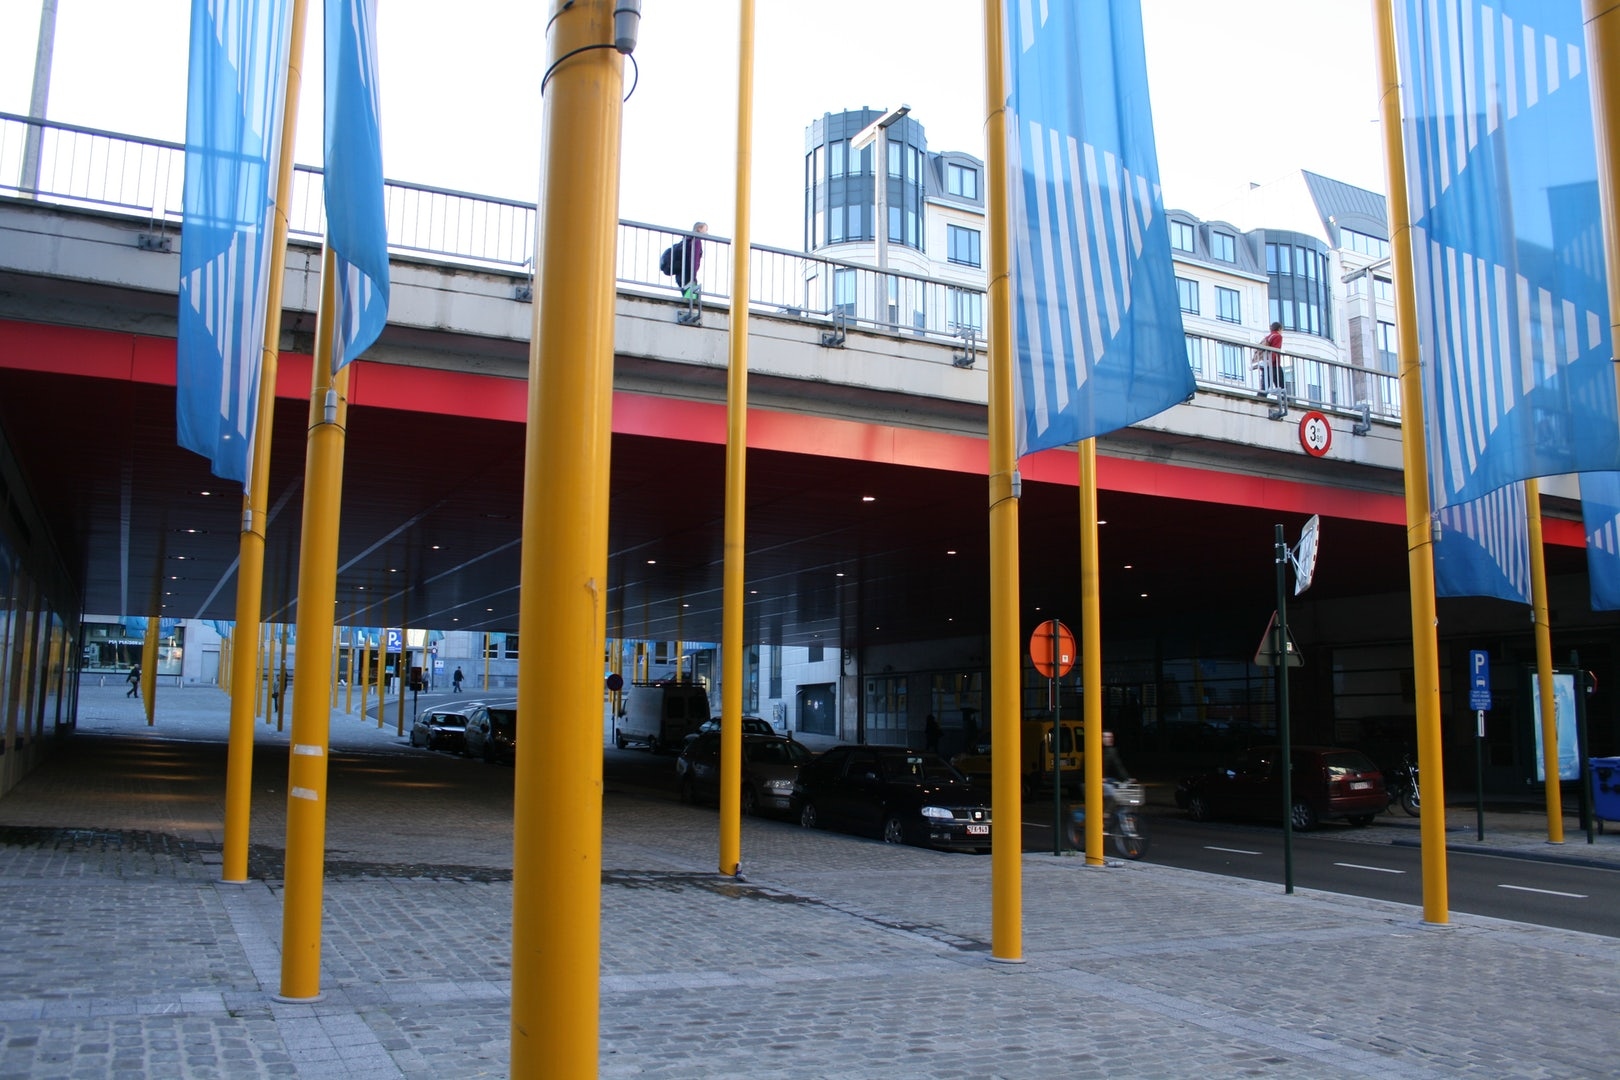 yellow and blue flagpole at Place de la Justice